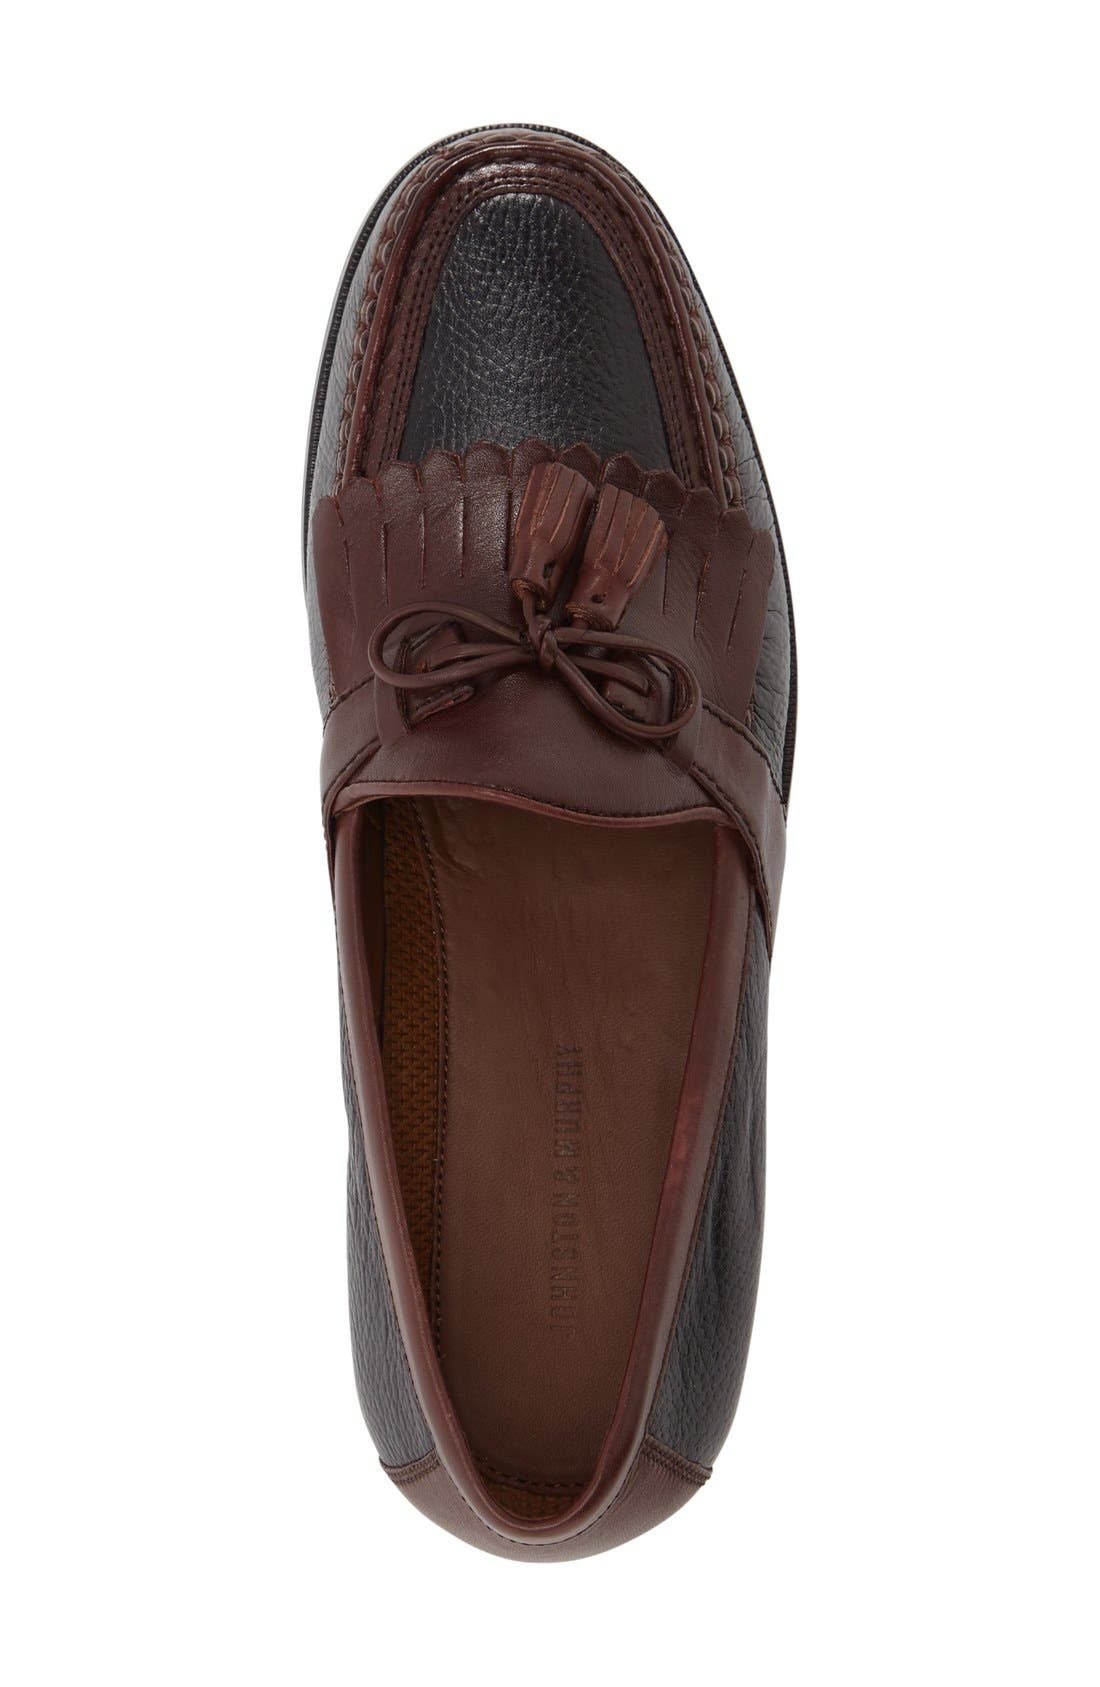 JOHNSTON & MURPHY, 'Aragon II' Loafer, Alternate thumbnail 4, color, BLACK/ BROWN LEATHER